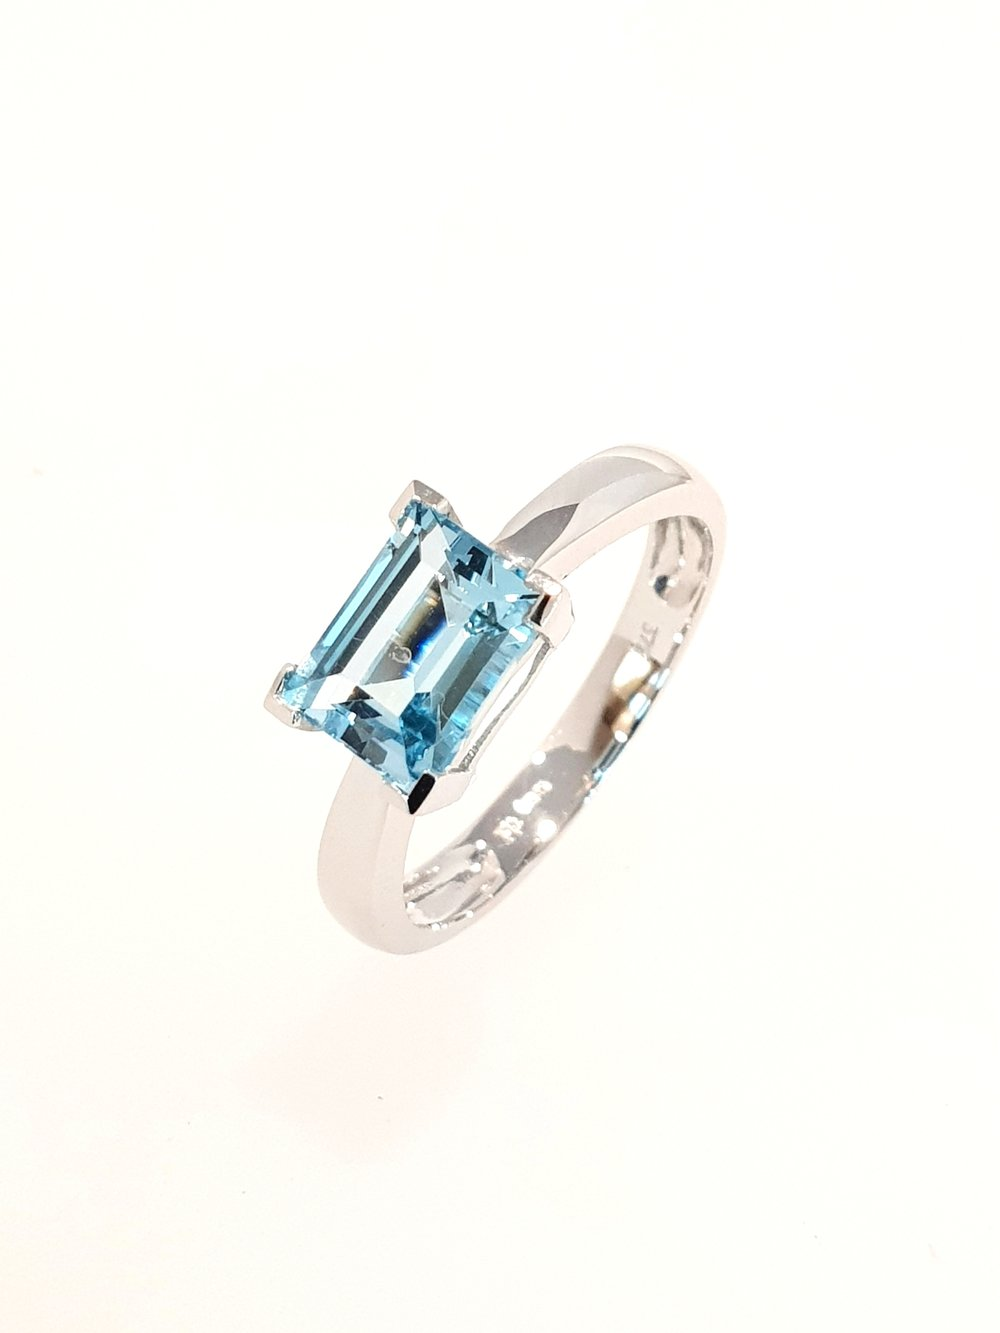 9ct White Gold Blue Topaz Ring SOLD  Stock Code: G1964  £300